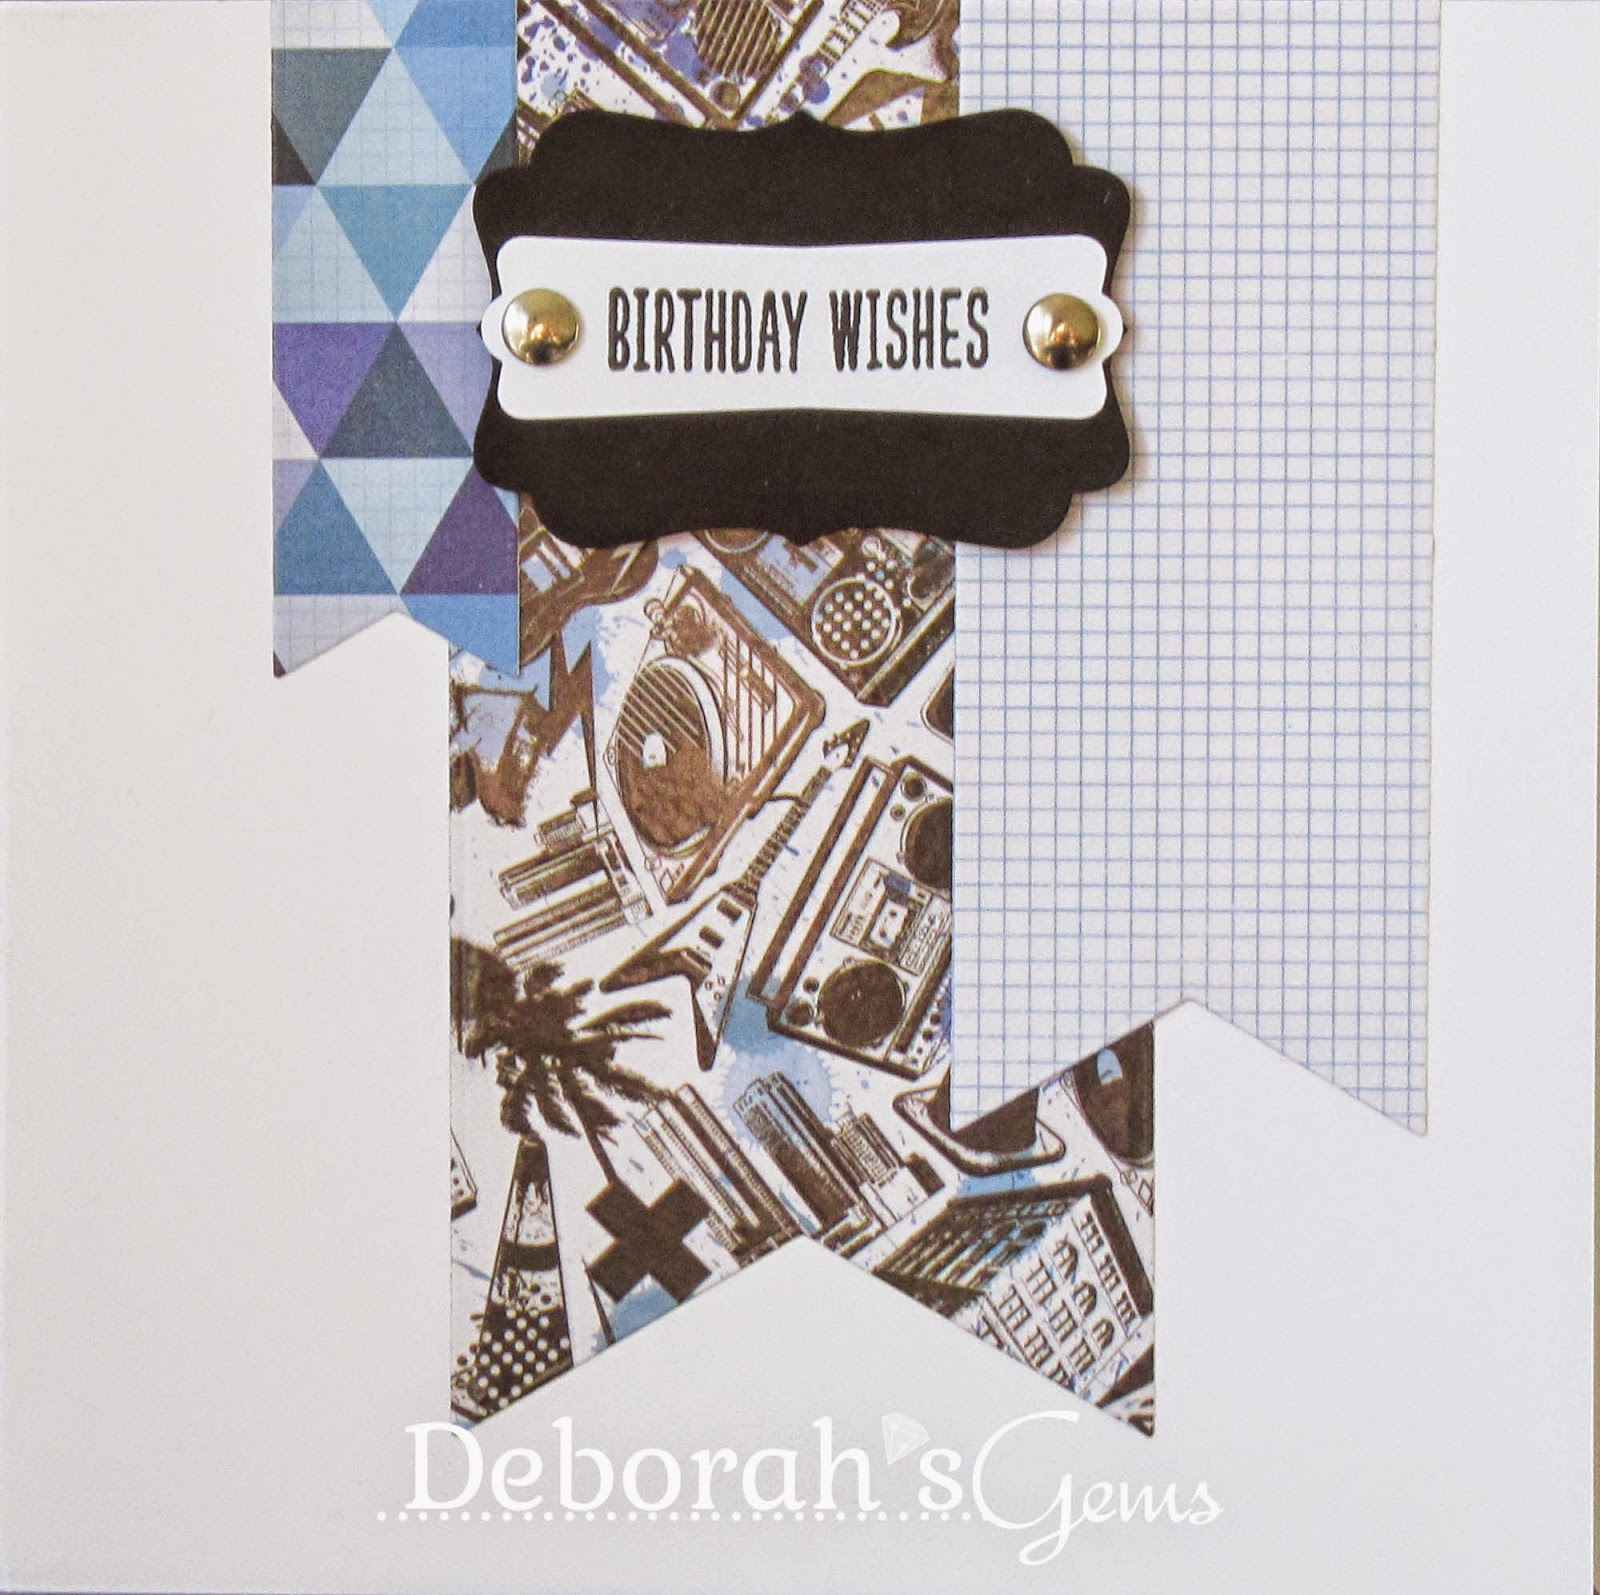 Birthday Wishes - photo by Deborah Frings - Deborah's Gems